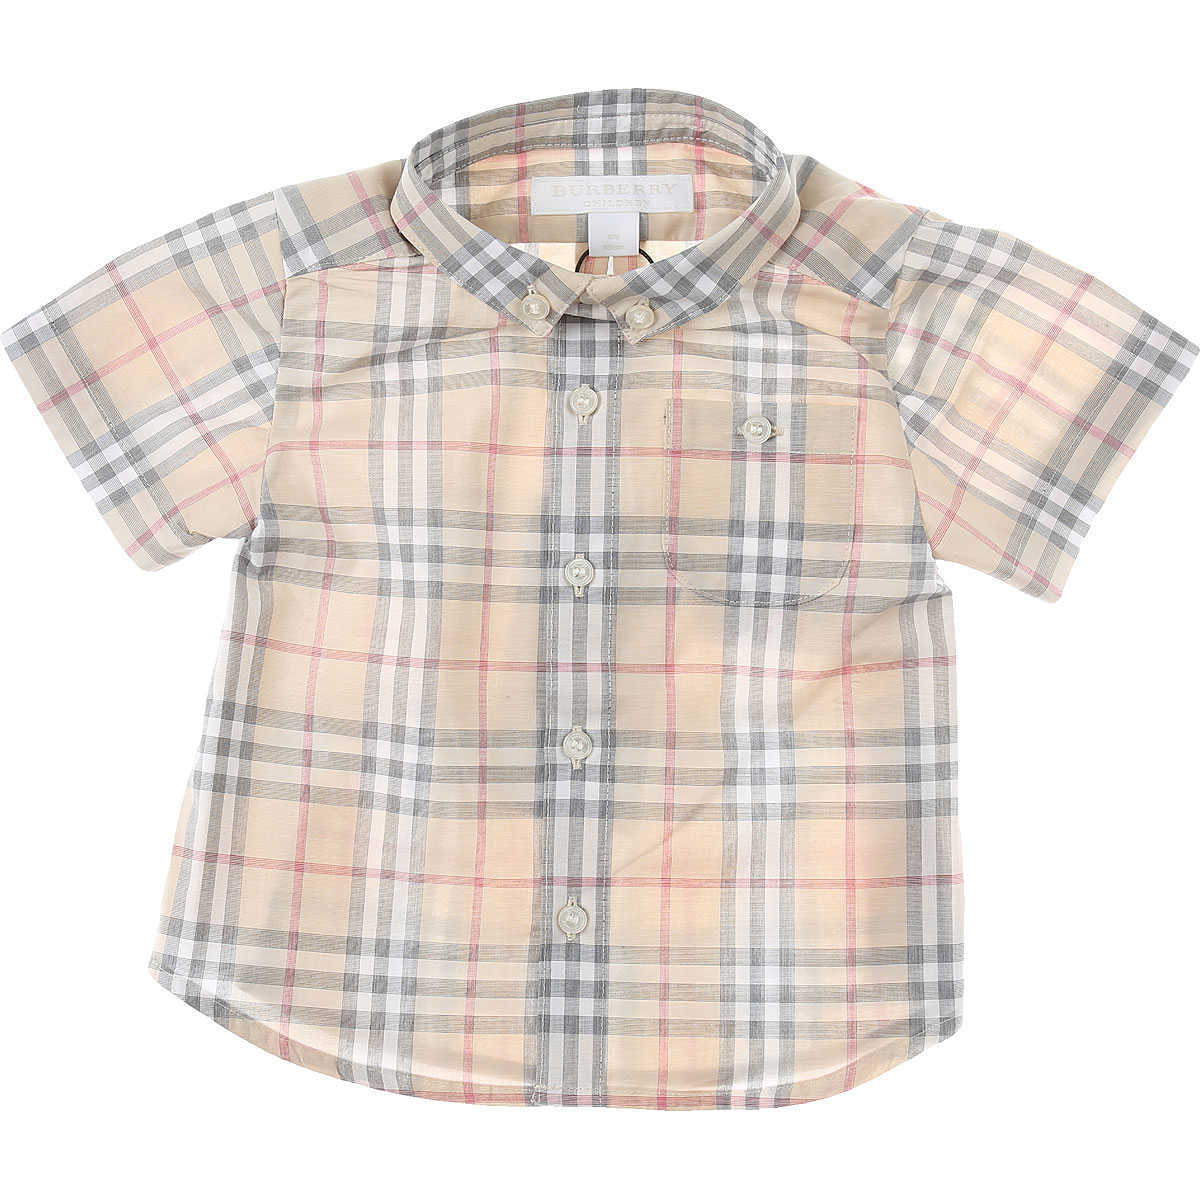 Burberry Baby Shirts for Boys On Sale Beige UK - GOOFASH - Mens SHIRTS